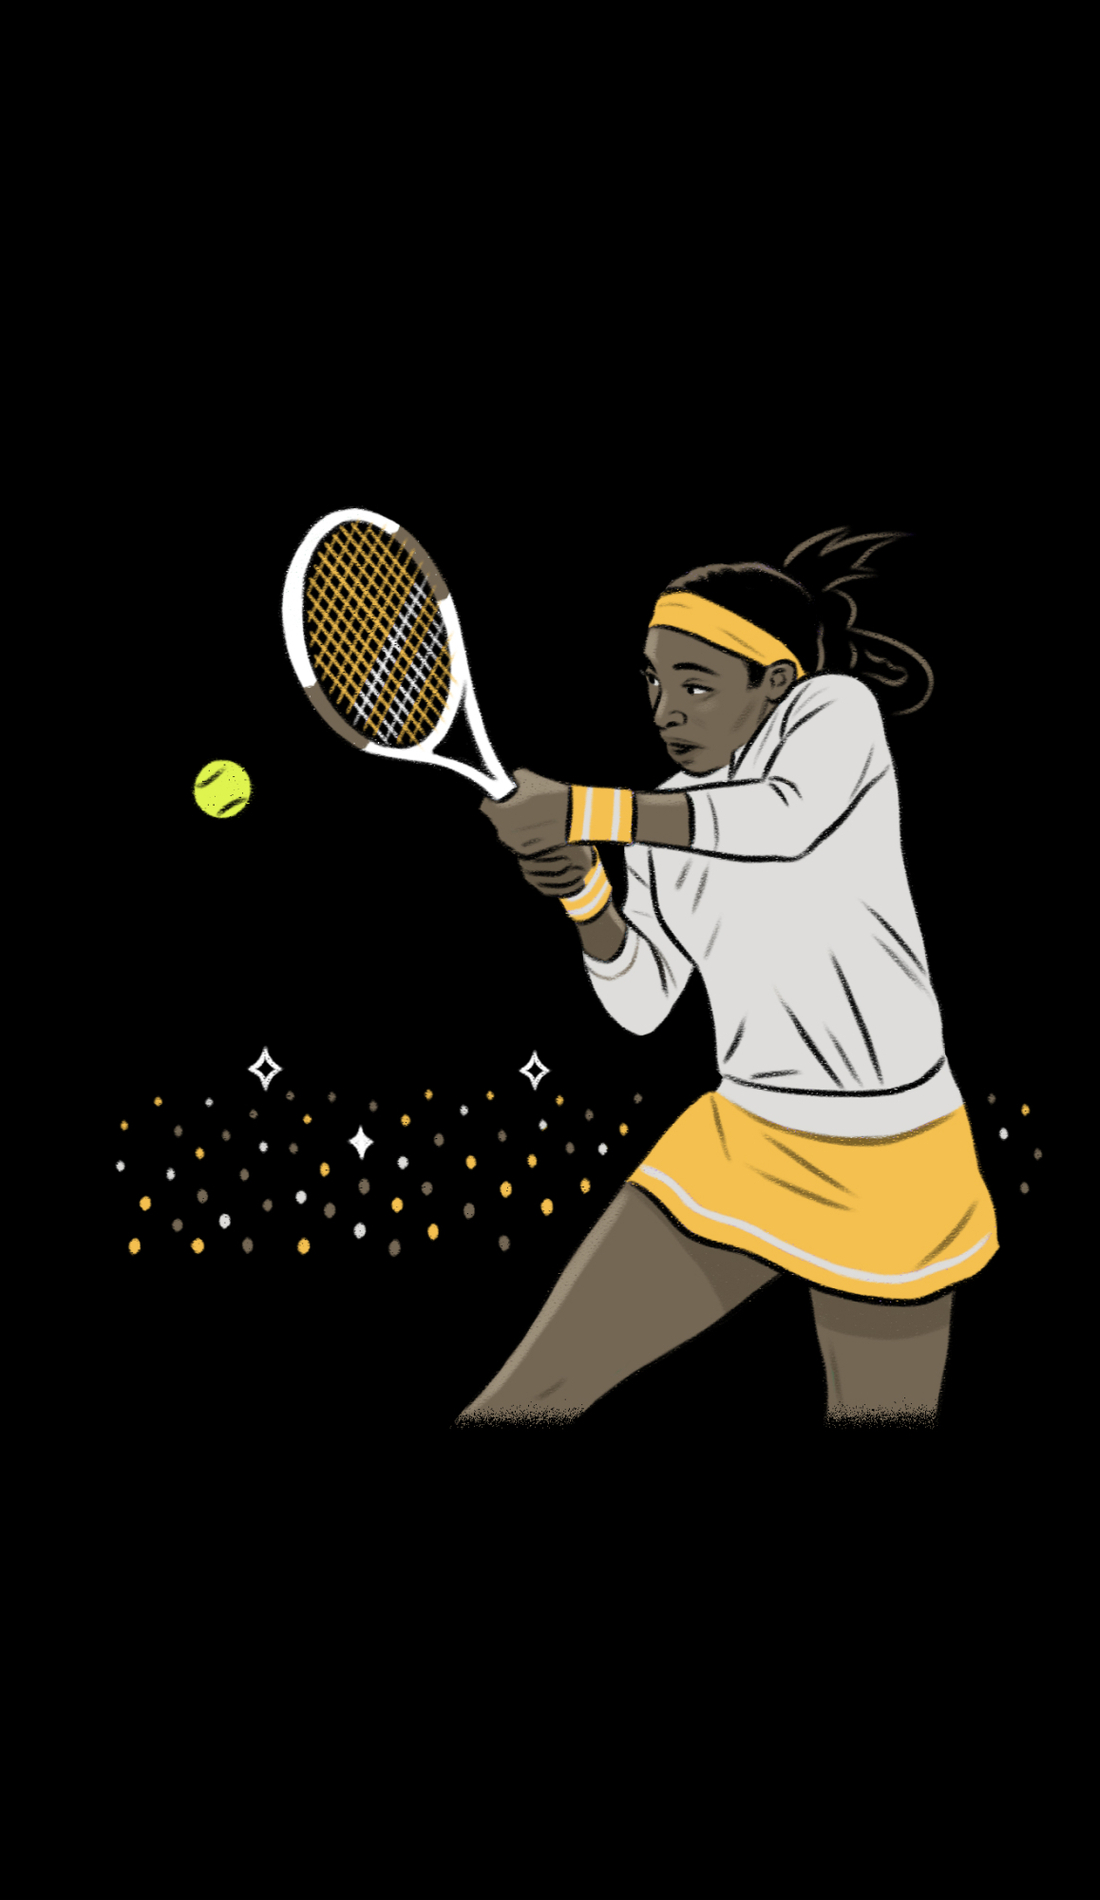 A Volvo Cars Tennis Open live event